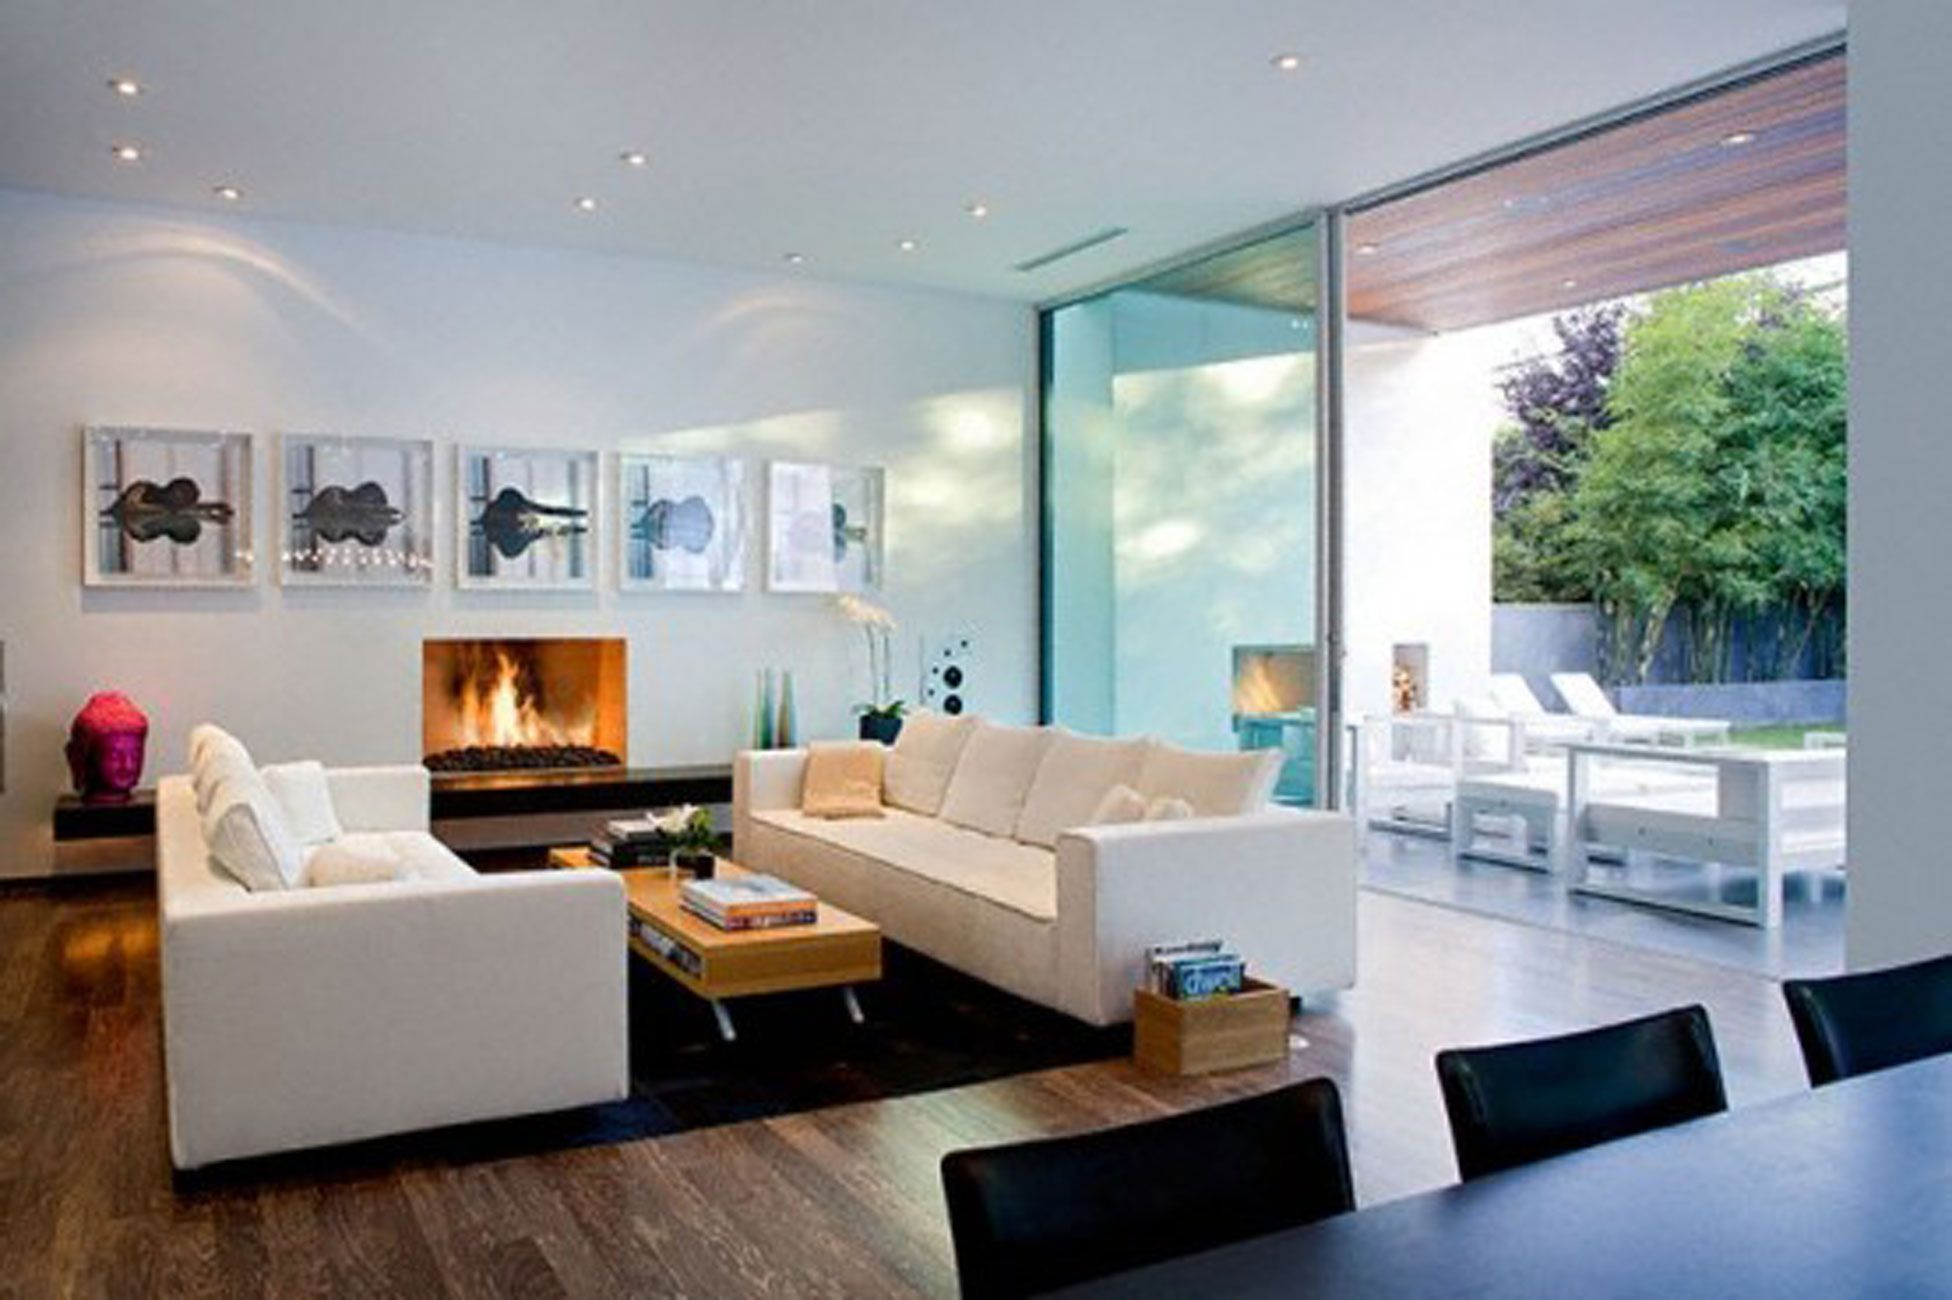 Impression Layout Design Of Contemporary Homes Q Modern Houses